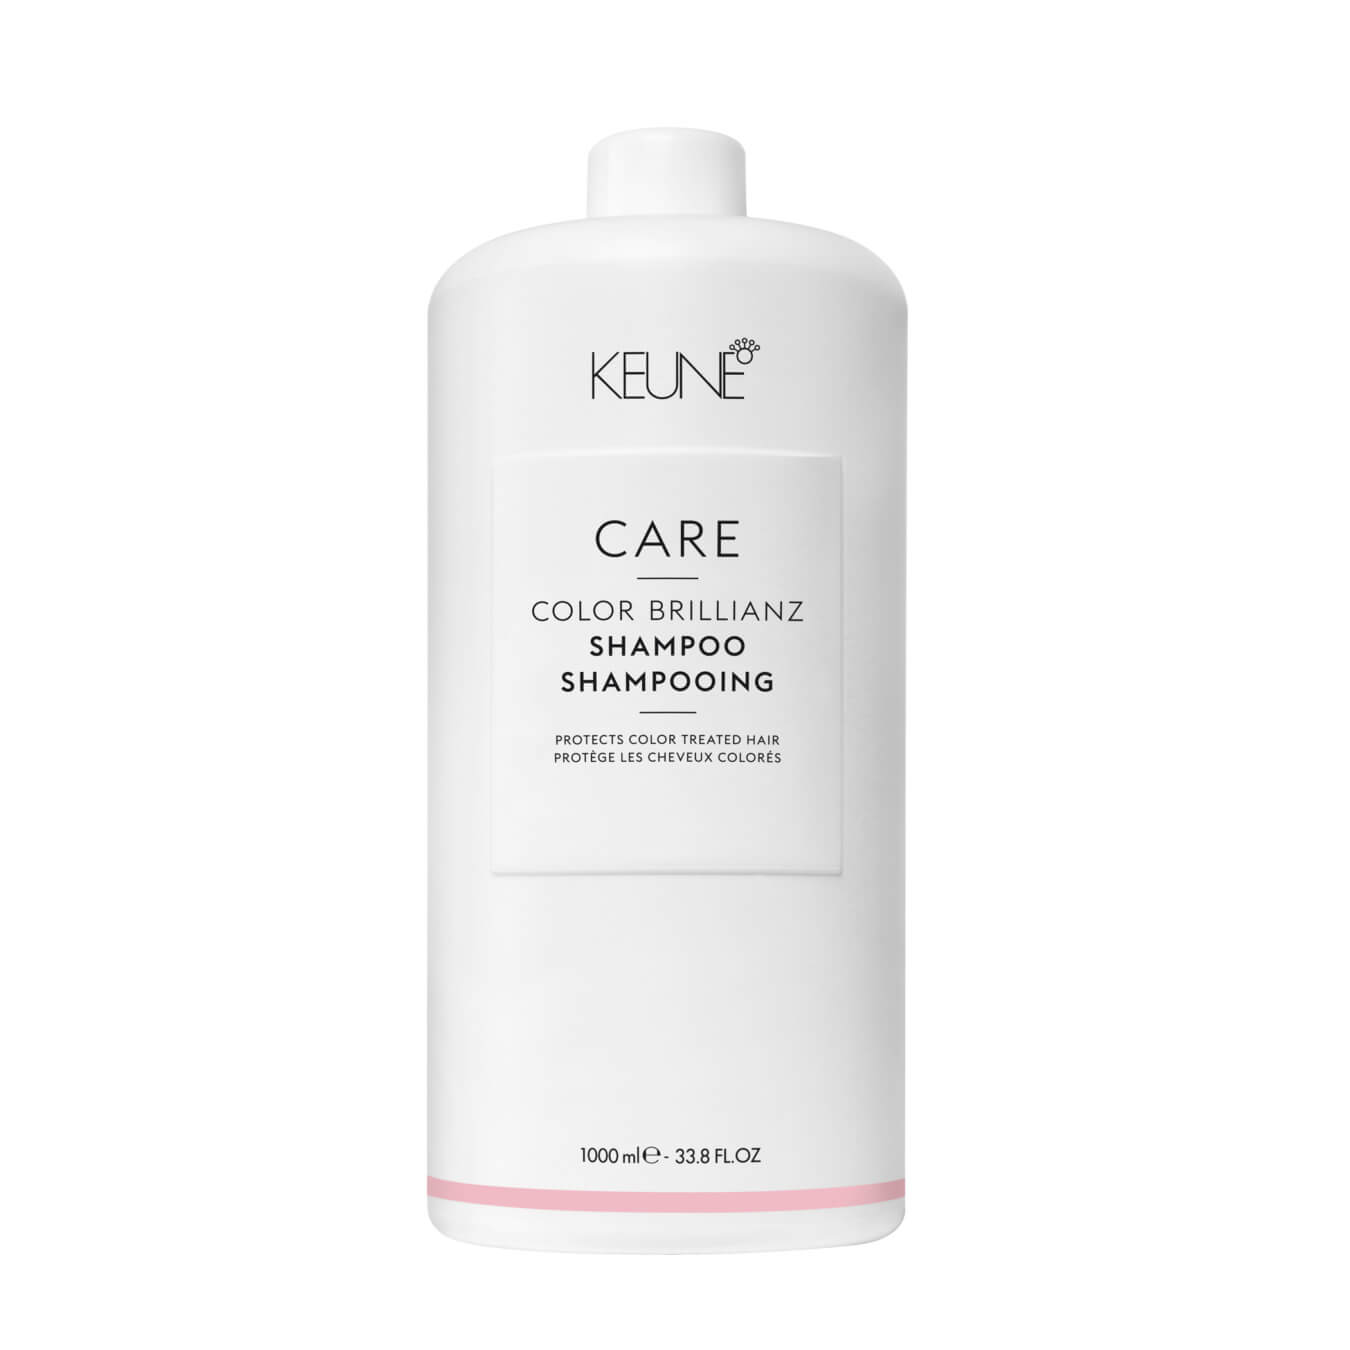 Koop Keune Care Color Brillianz Shampoo 1000ml